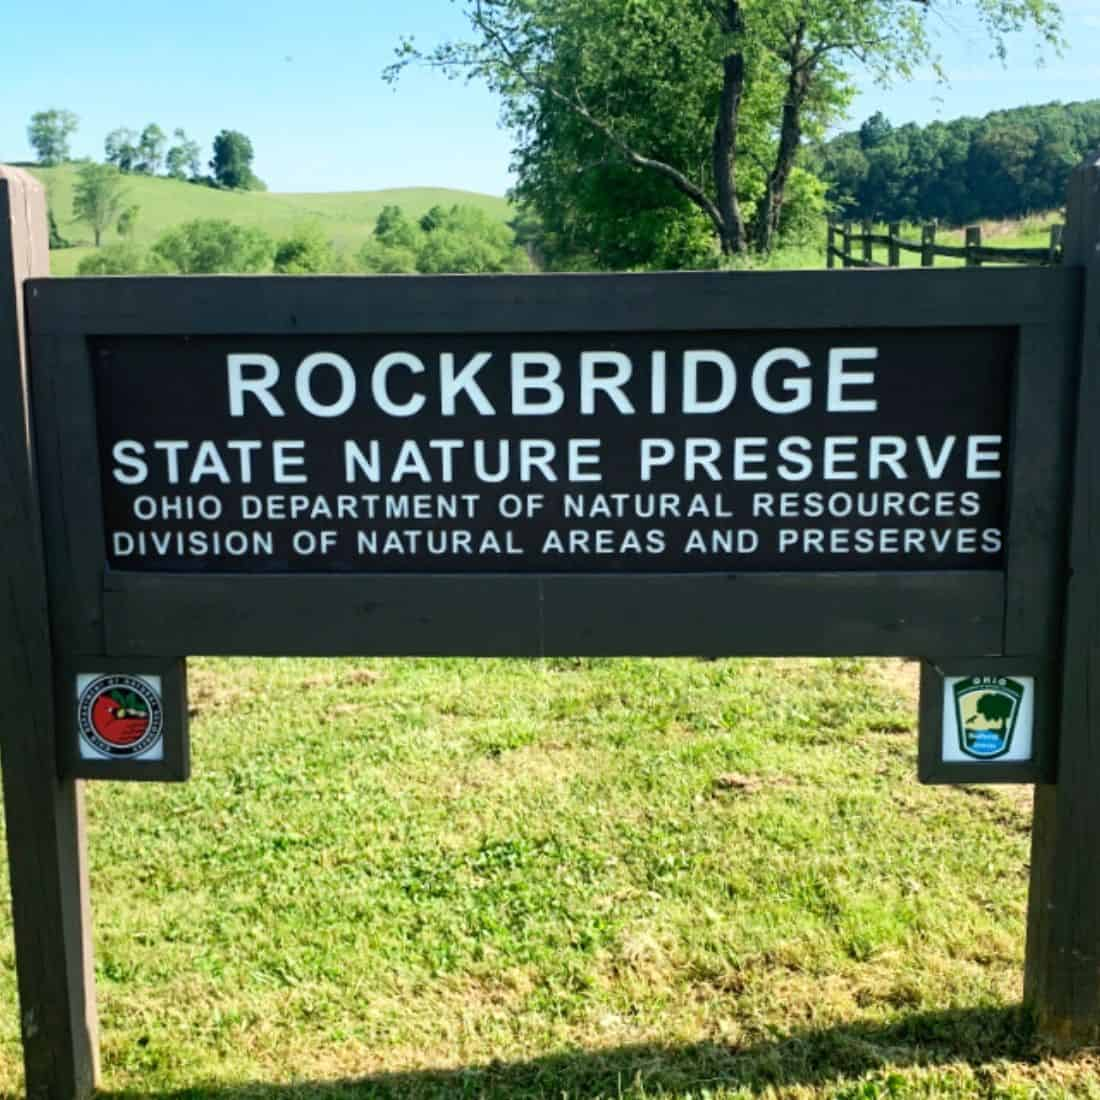 Brown wooden sign with white text at the entrance to a forest that says Rockbridge State Nature Preserve